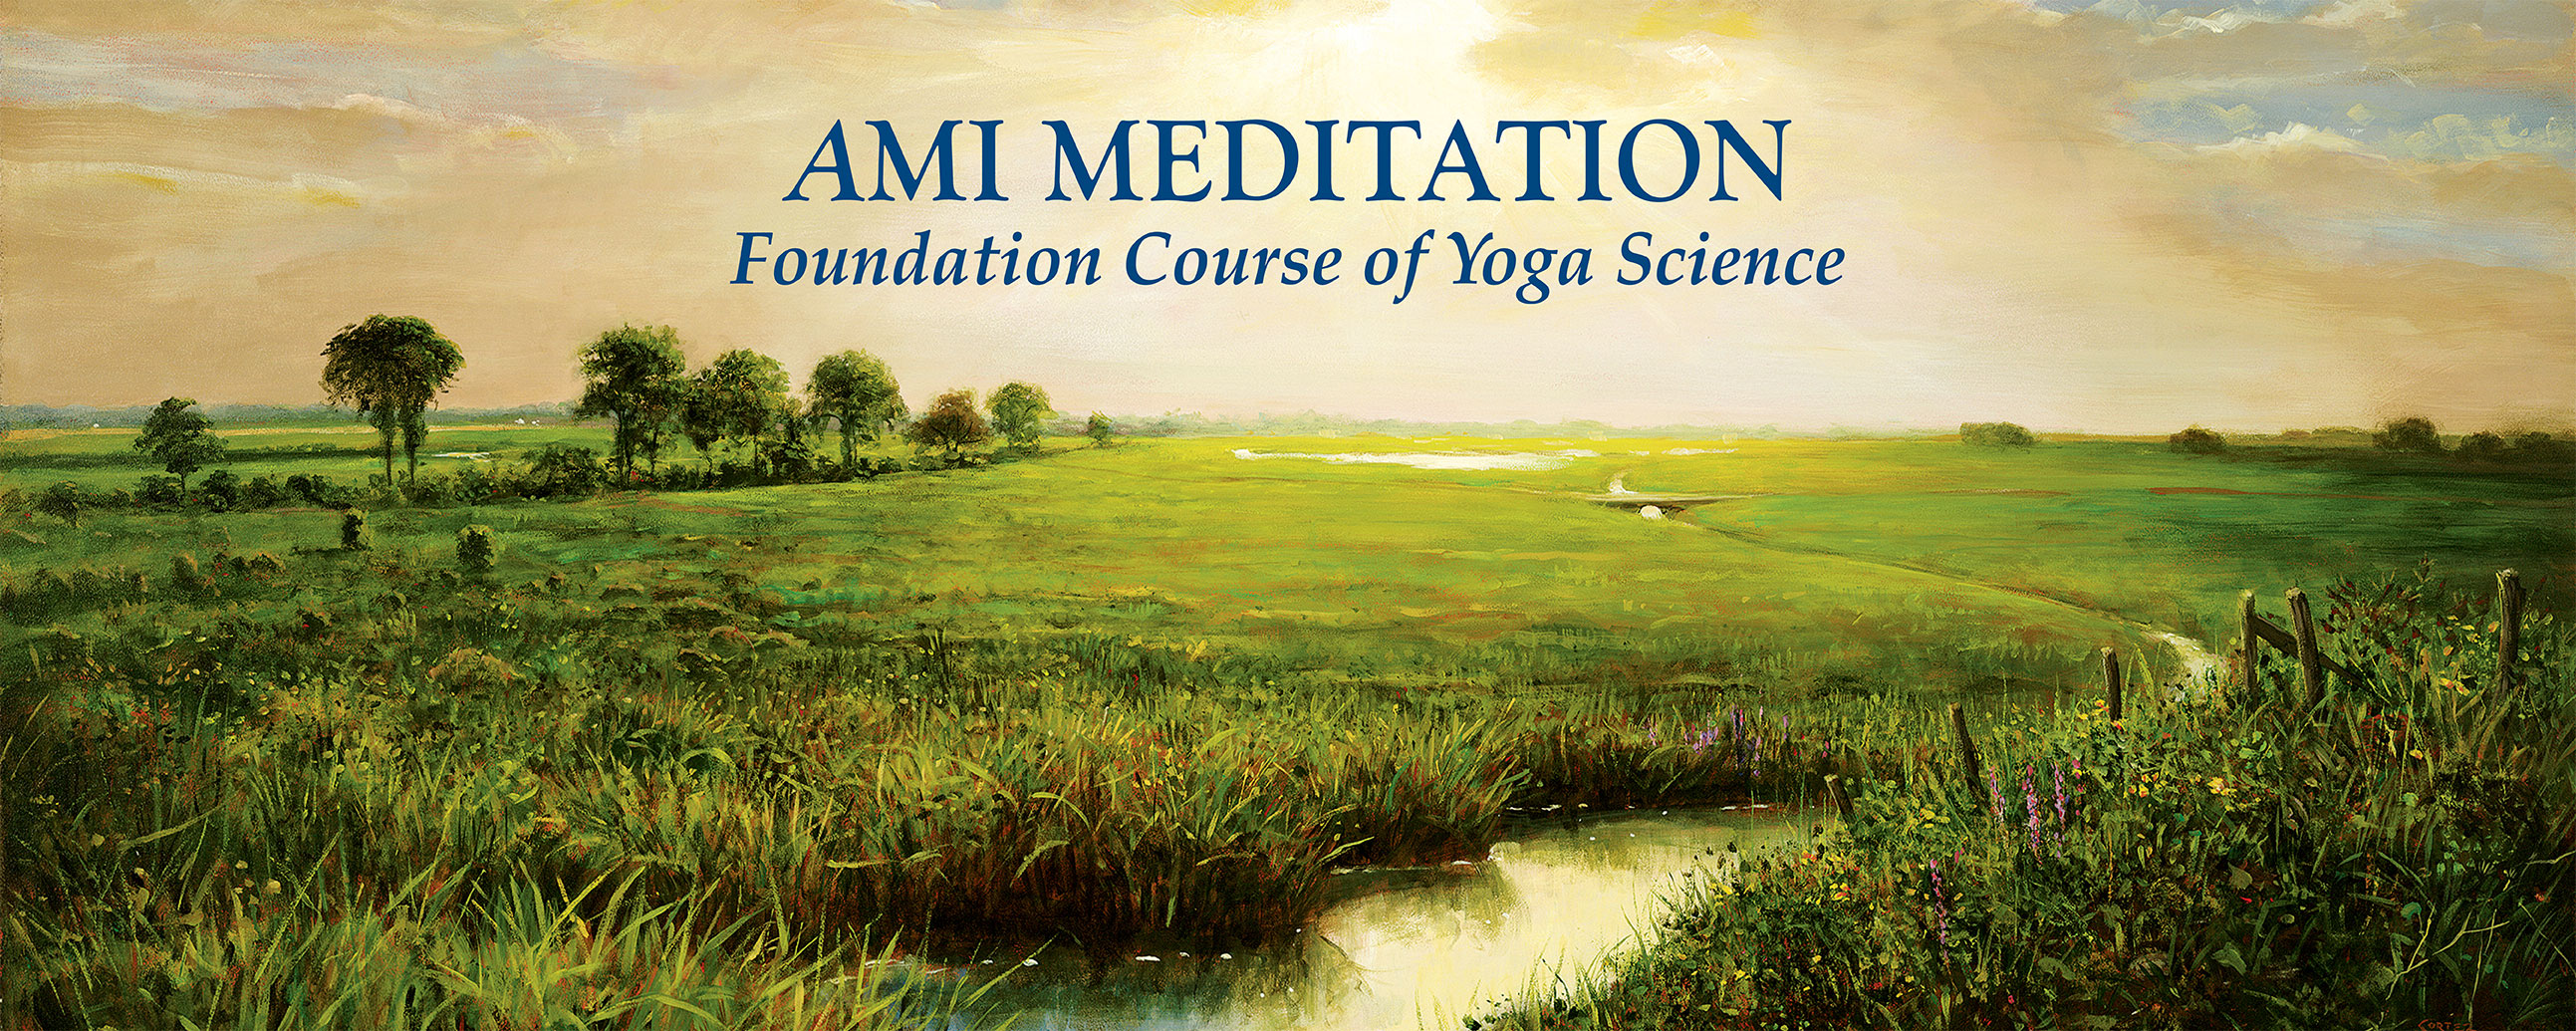 AMI Meditation Foundation Course